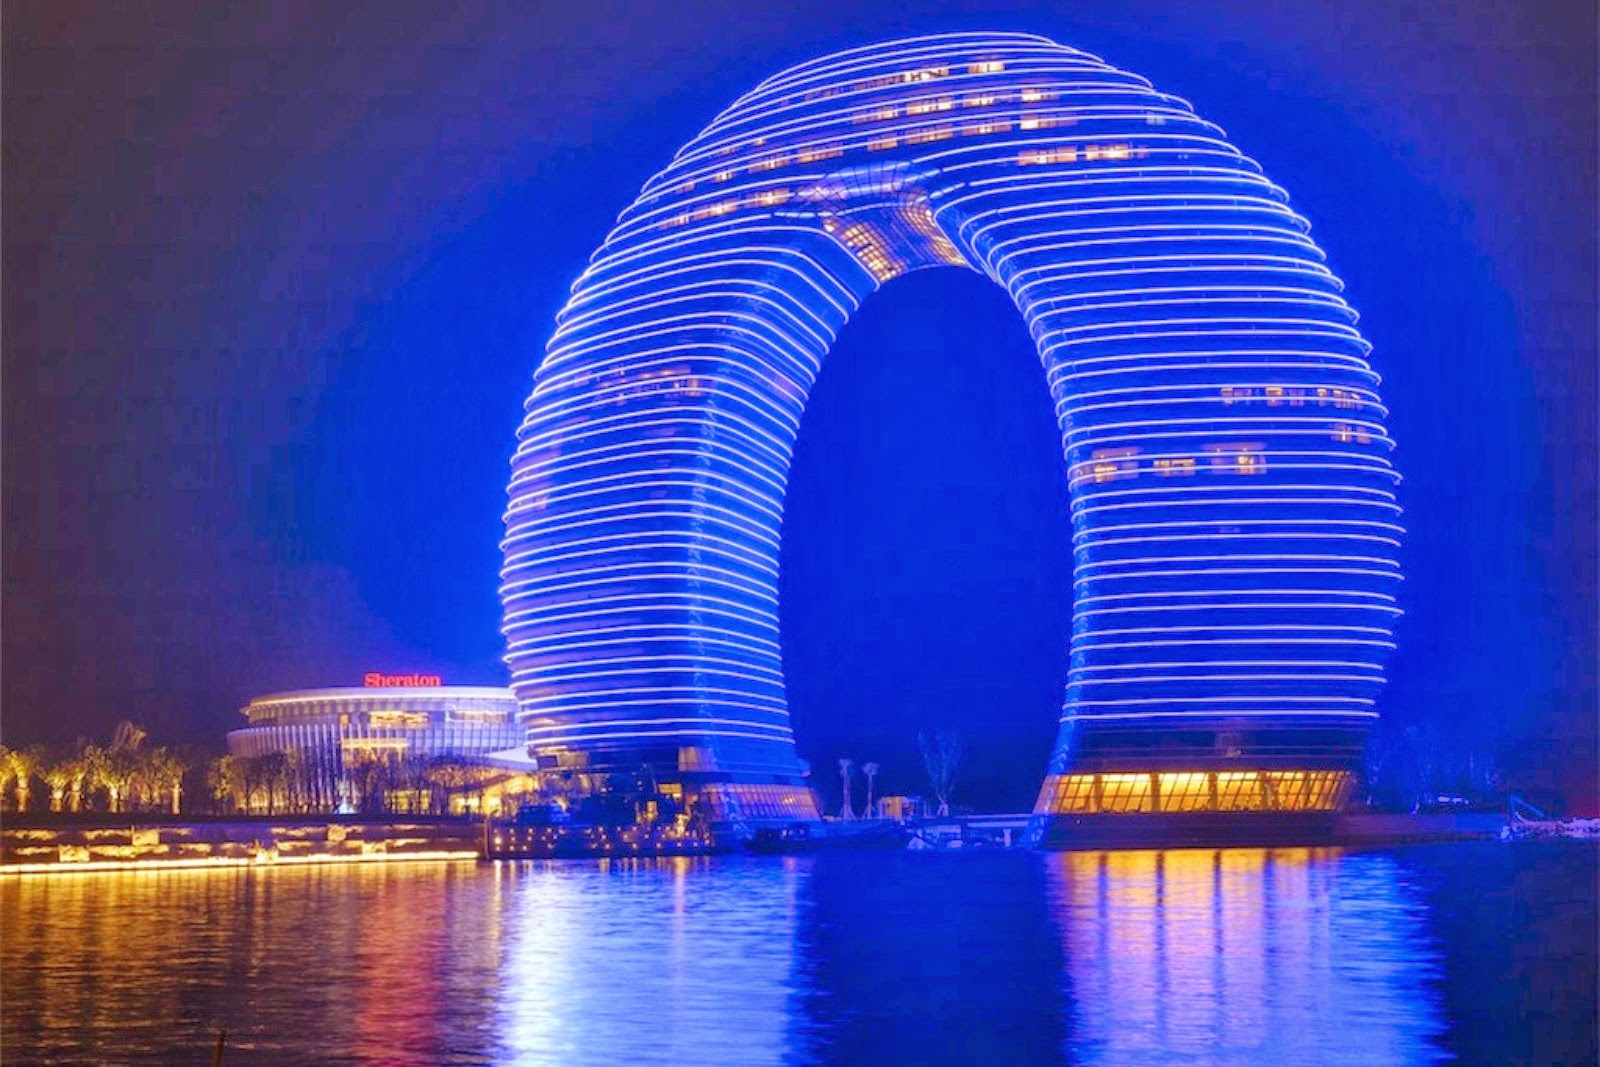 Strange Amazing Buildings Around The World - Cybertecture Egg Building Mumbai India